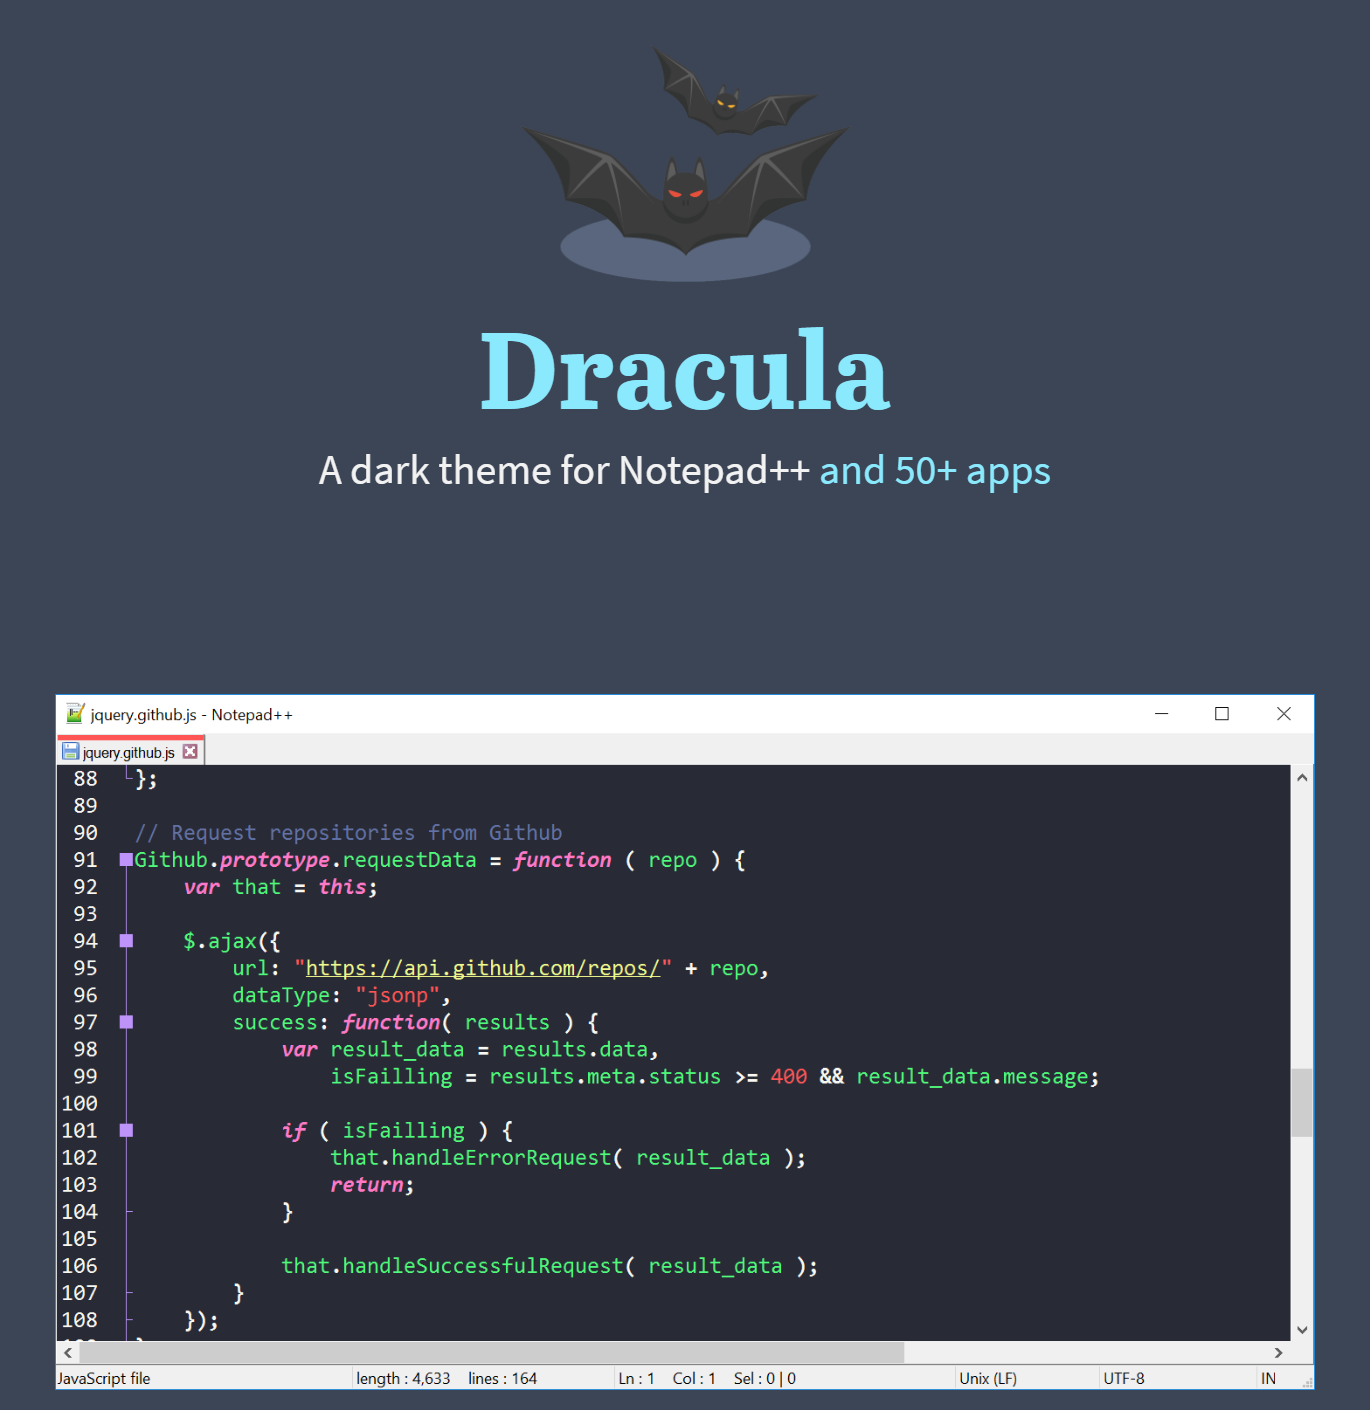 Dracula: A dark theme for Notepad++ and 50+ apps